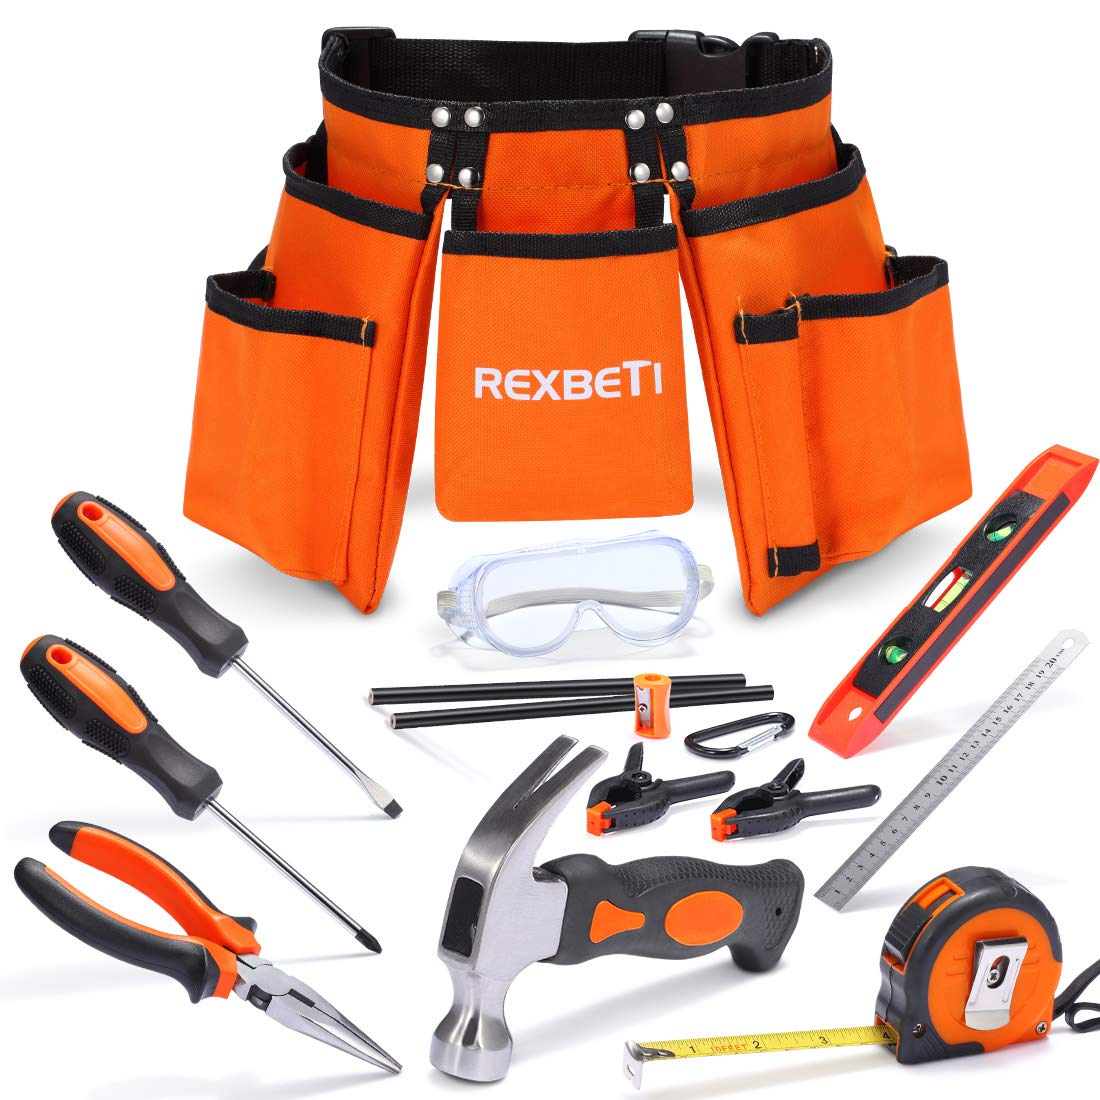 REXBETI 15pcs Young Builder's Tool Set with Real Hand Tools, Reinforced Kids Tool Belt, Waist 20''-32'', Perfect Kids Learning Tool Kit for Home DIY and Woodworking by REXBETI